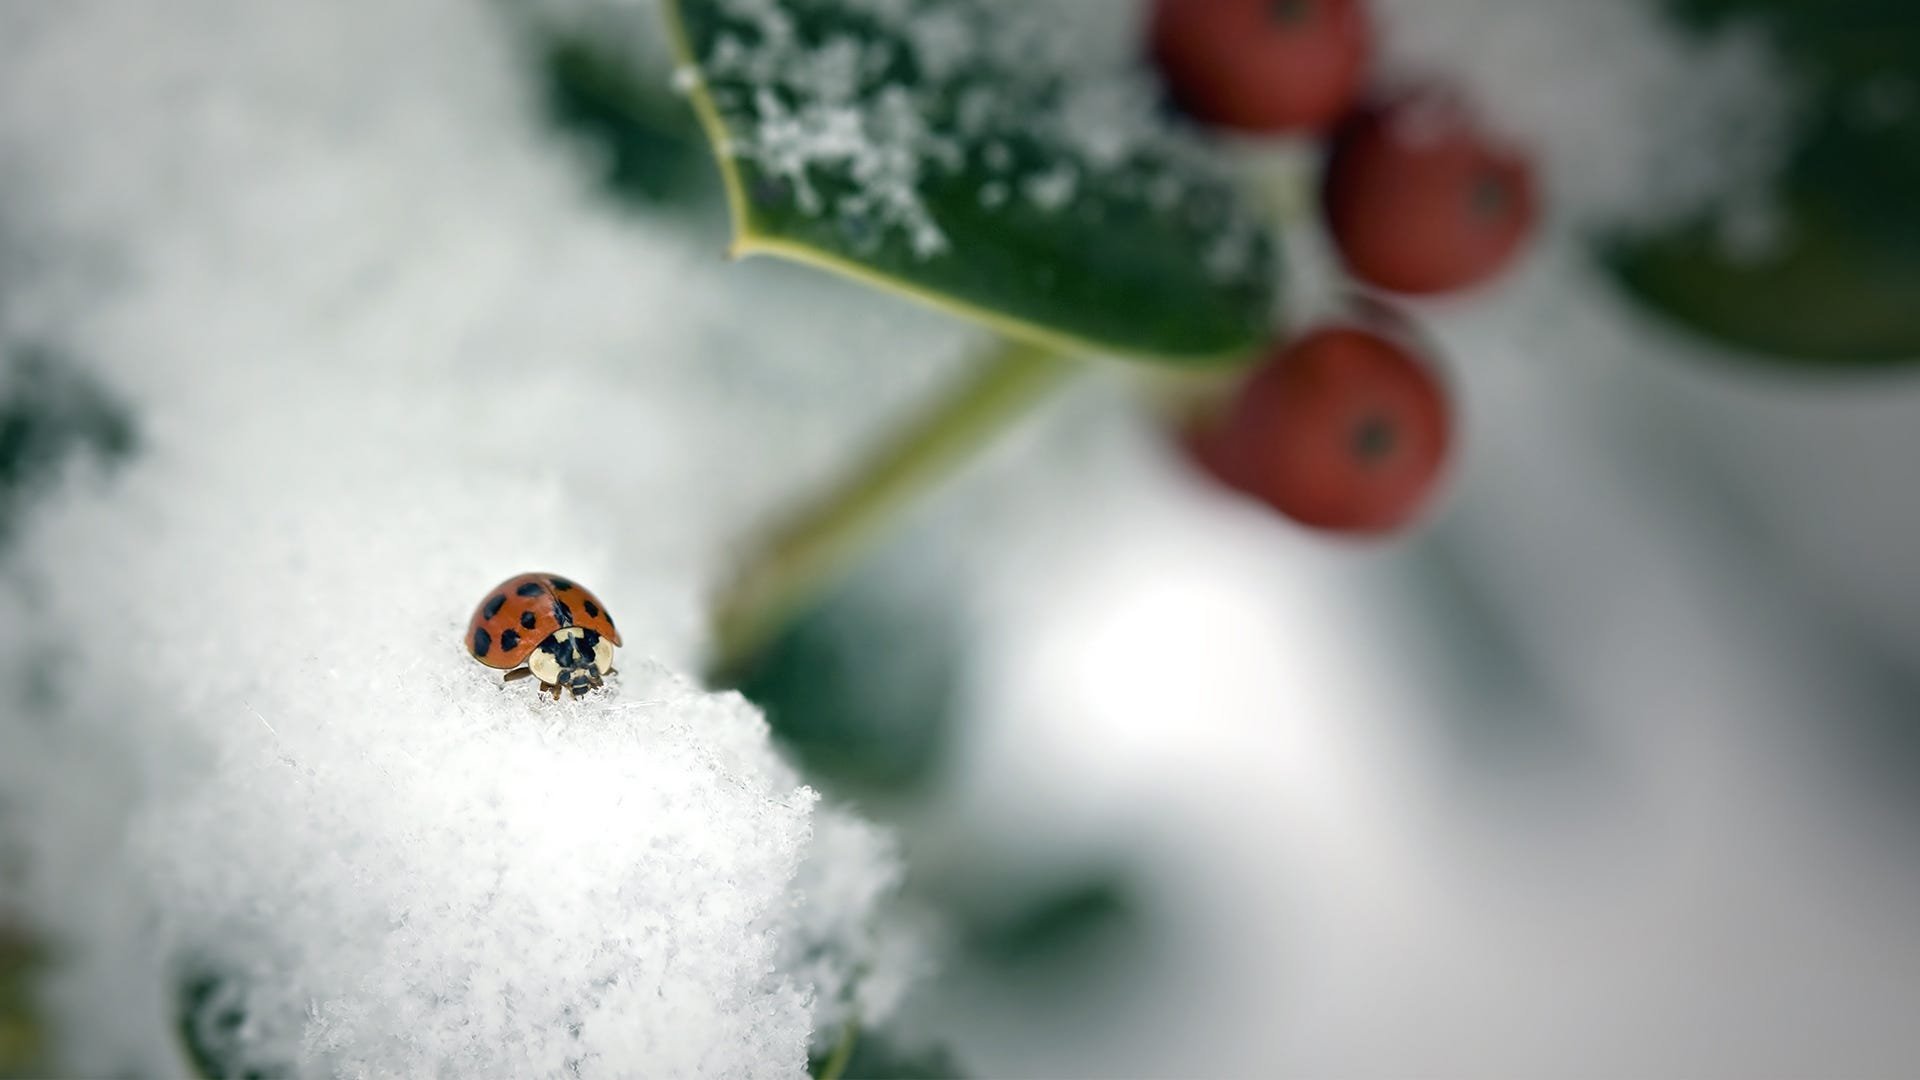 How Do Cold Temperatures Affect Insects?